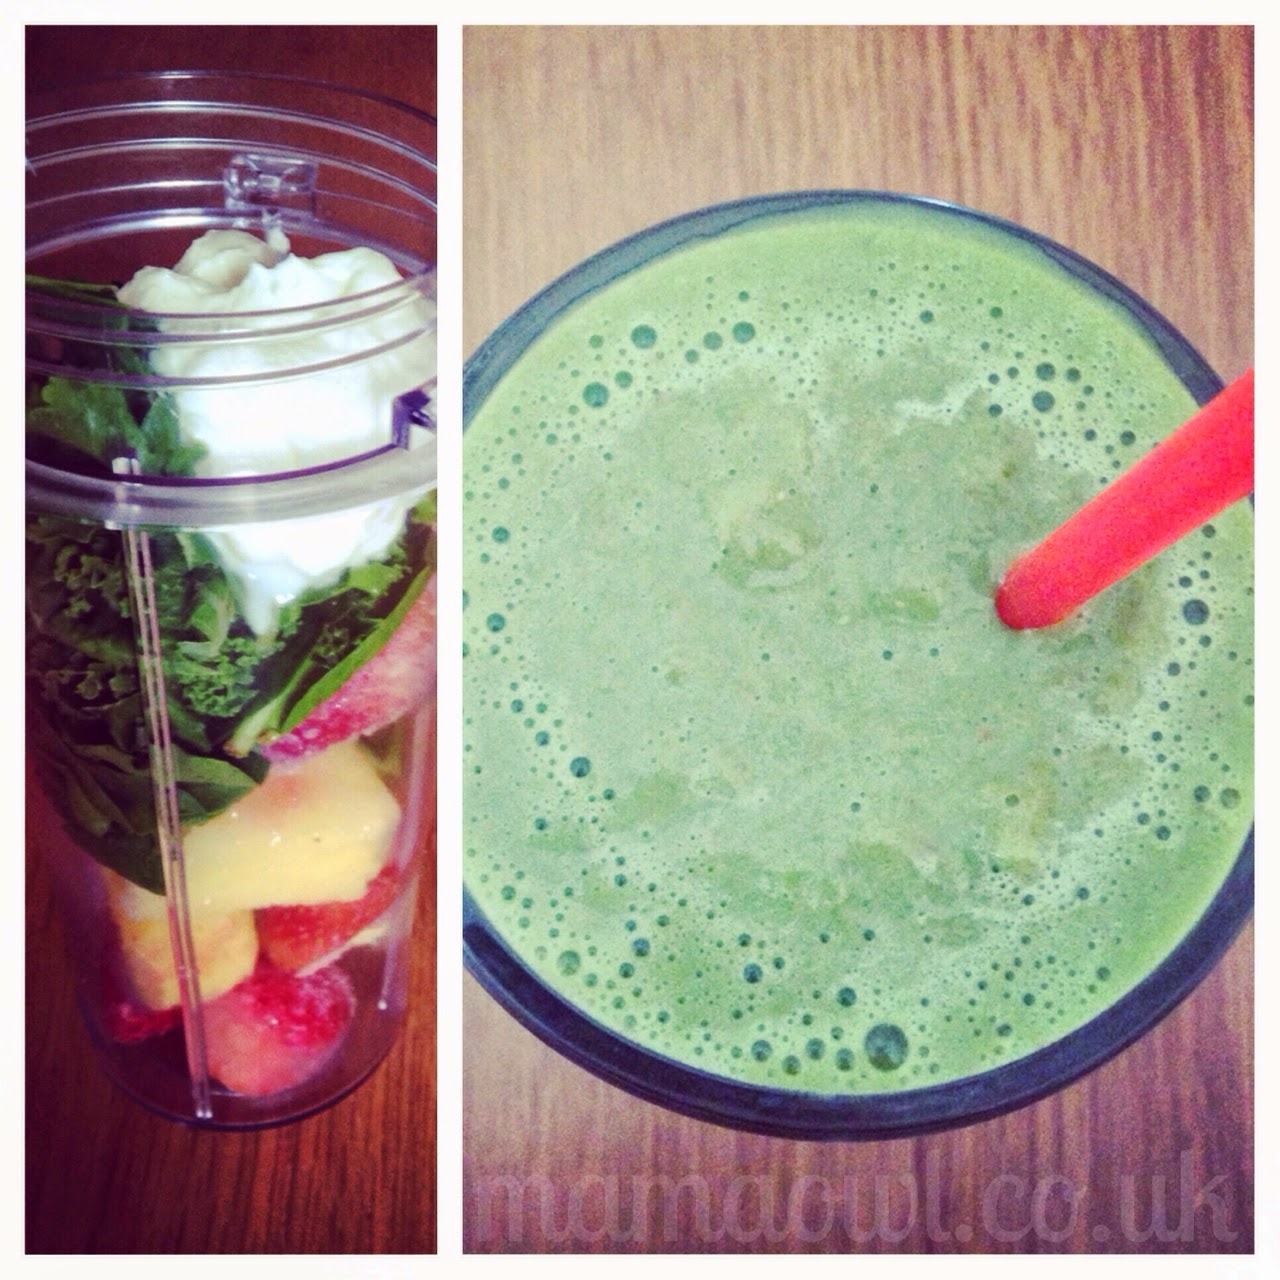 Smoothie - Kale, Spinach, Strawberries, Pineapple, Total Greek 0%